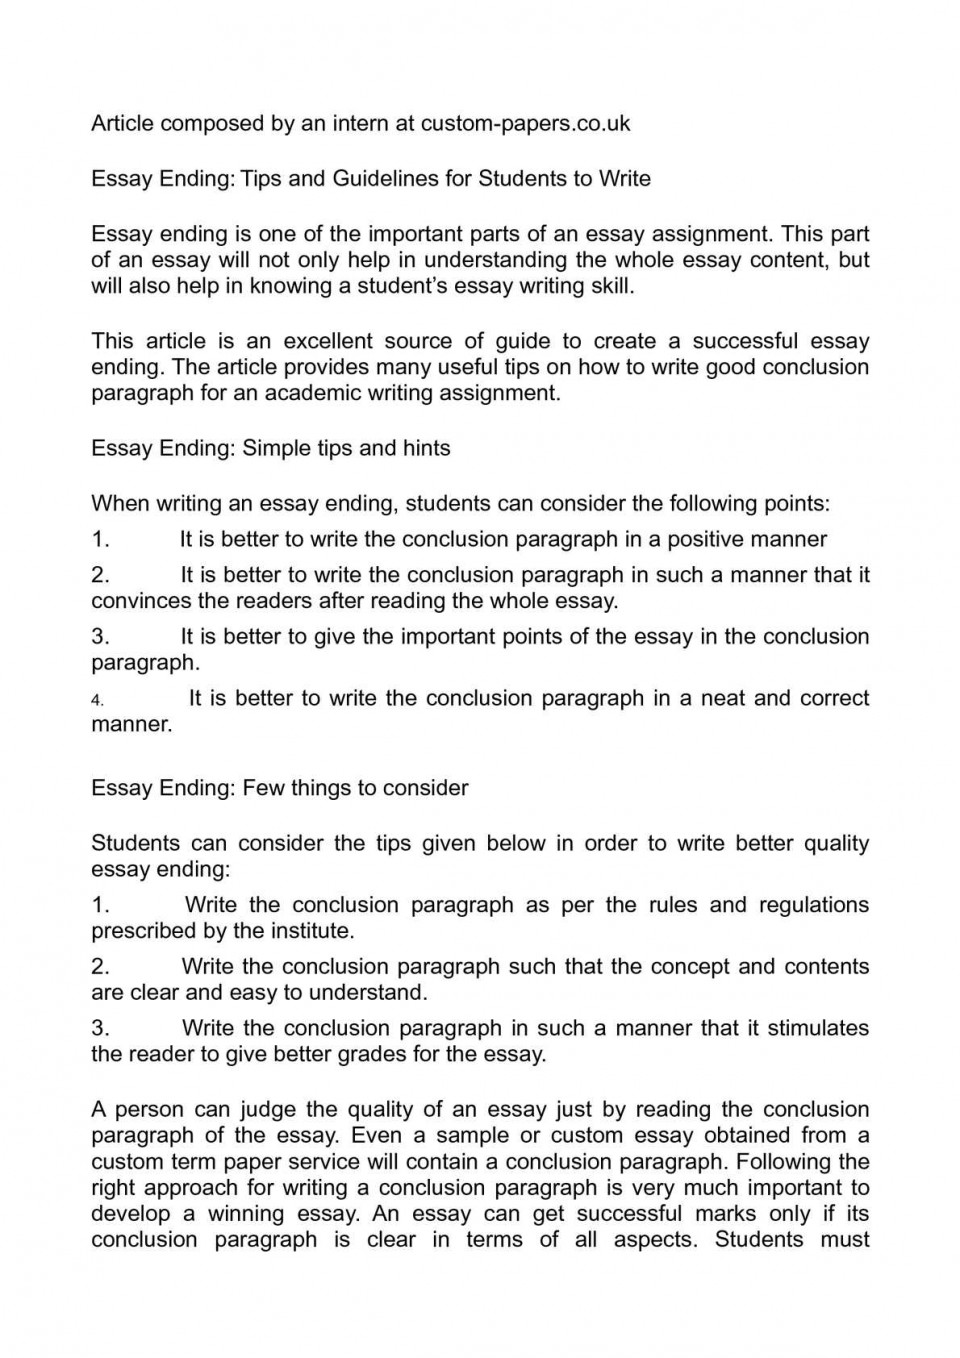 001 Parts Of An Essay Ending Tips And Guidelines For Students To Write Writing Persuasi Pdf Three Persuasive Stupendous Outline Quiz Ppt 960